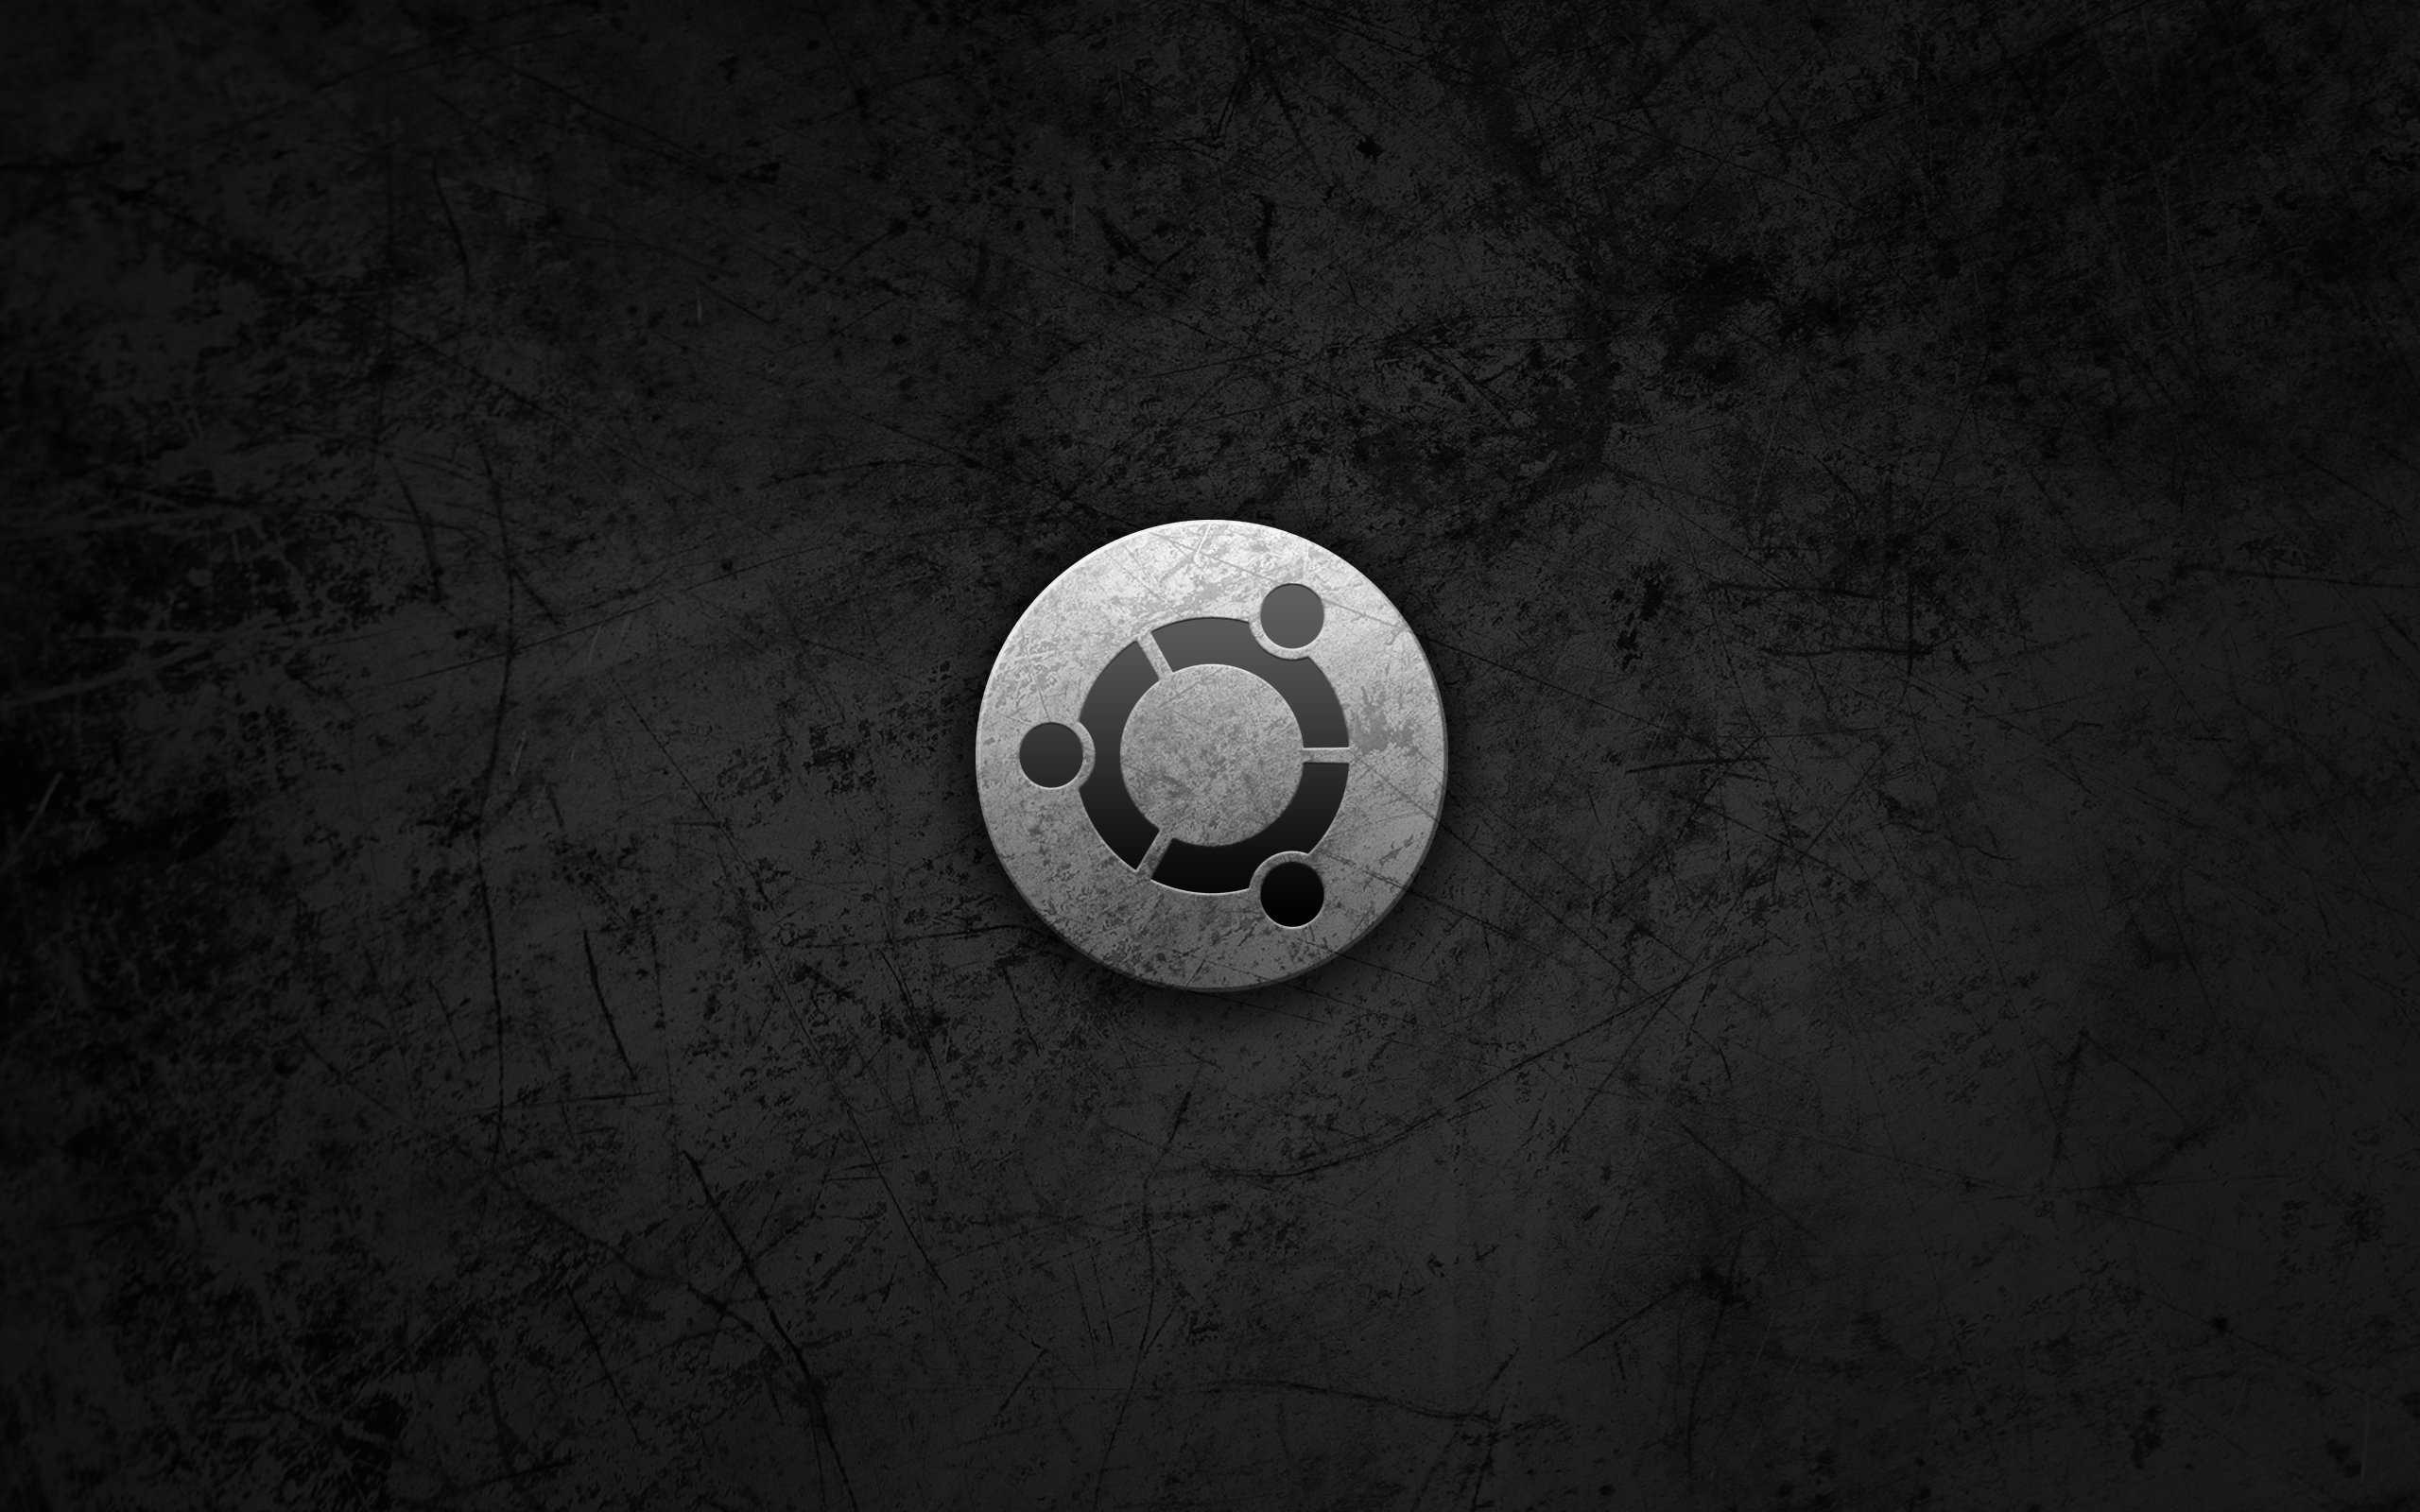 Caduceus Symbol Wallpapers - Android Apps on Google Play